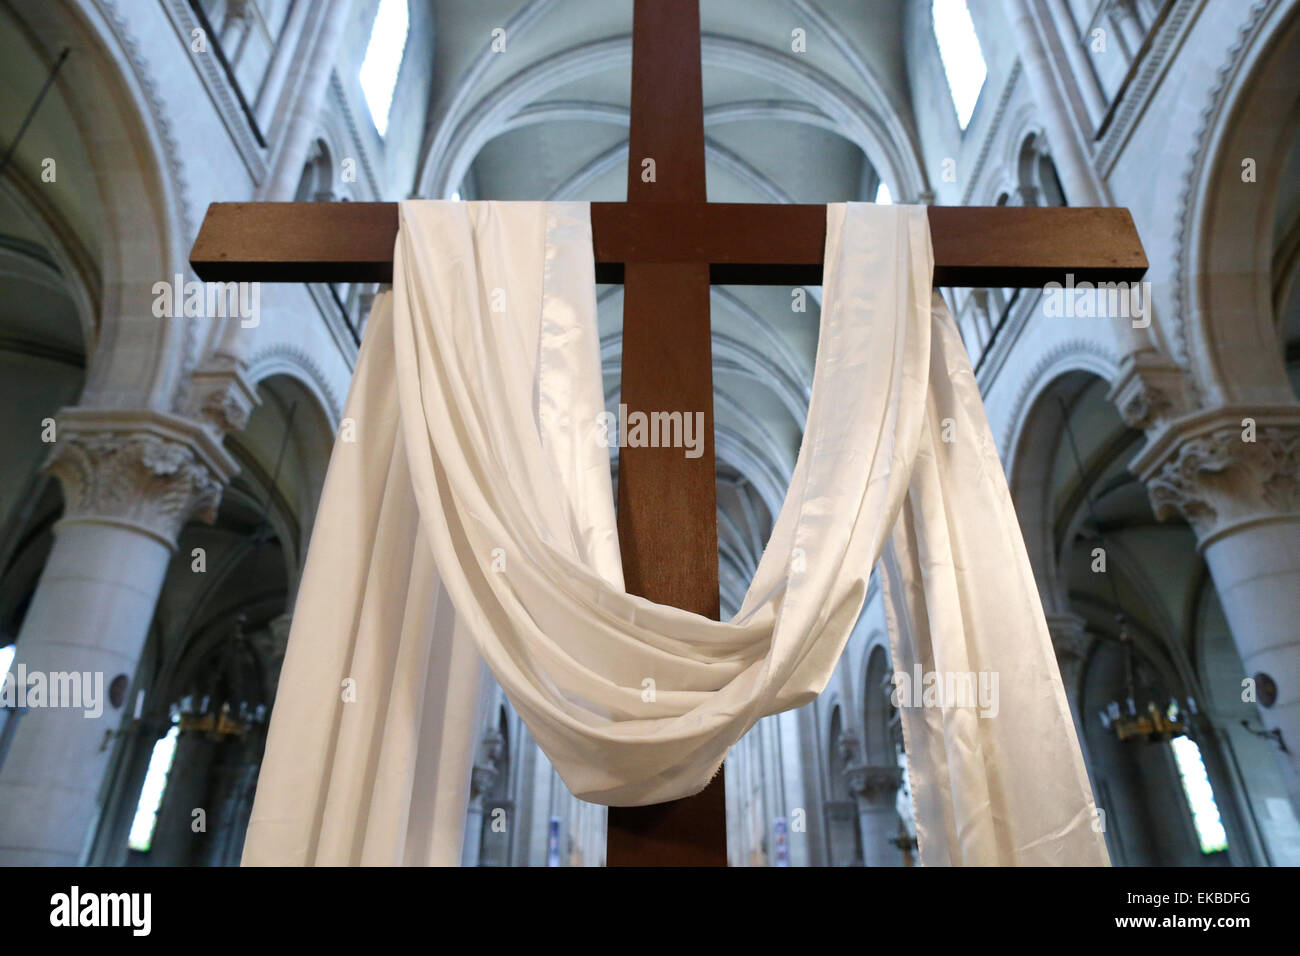 The cross and the white cloth symbolize the resurrection of Jesus, Holy Week, St. Ambroise church, Paris, France, - Stock Image